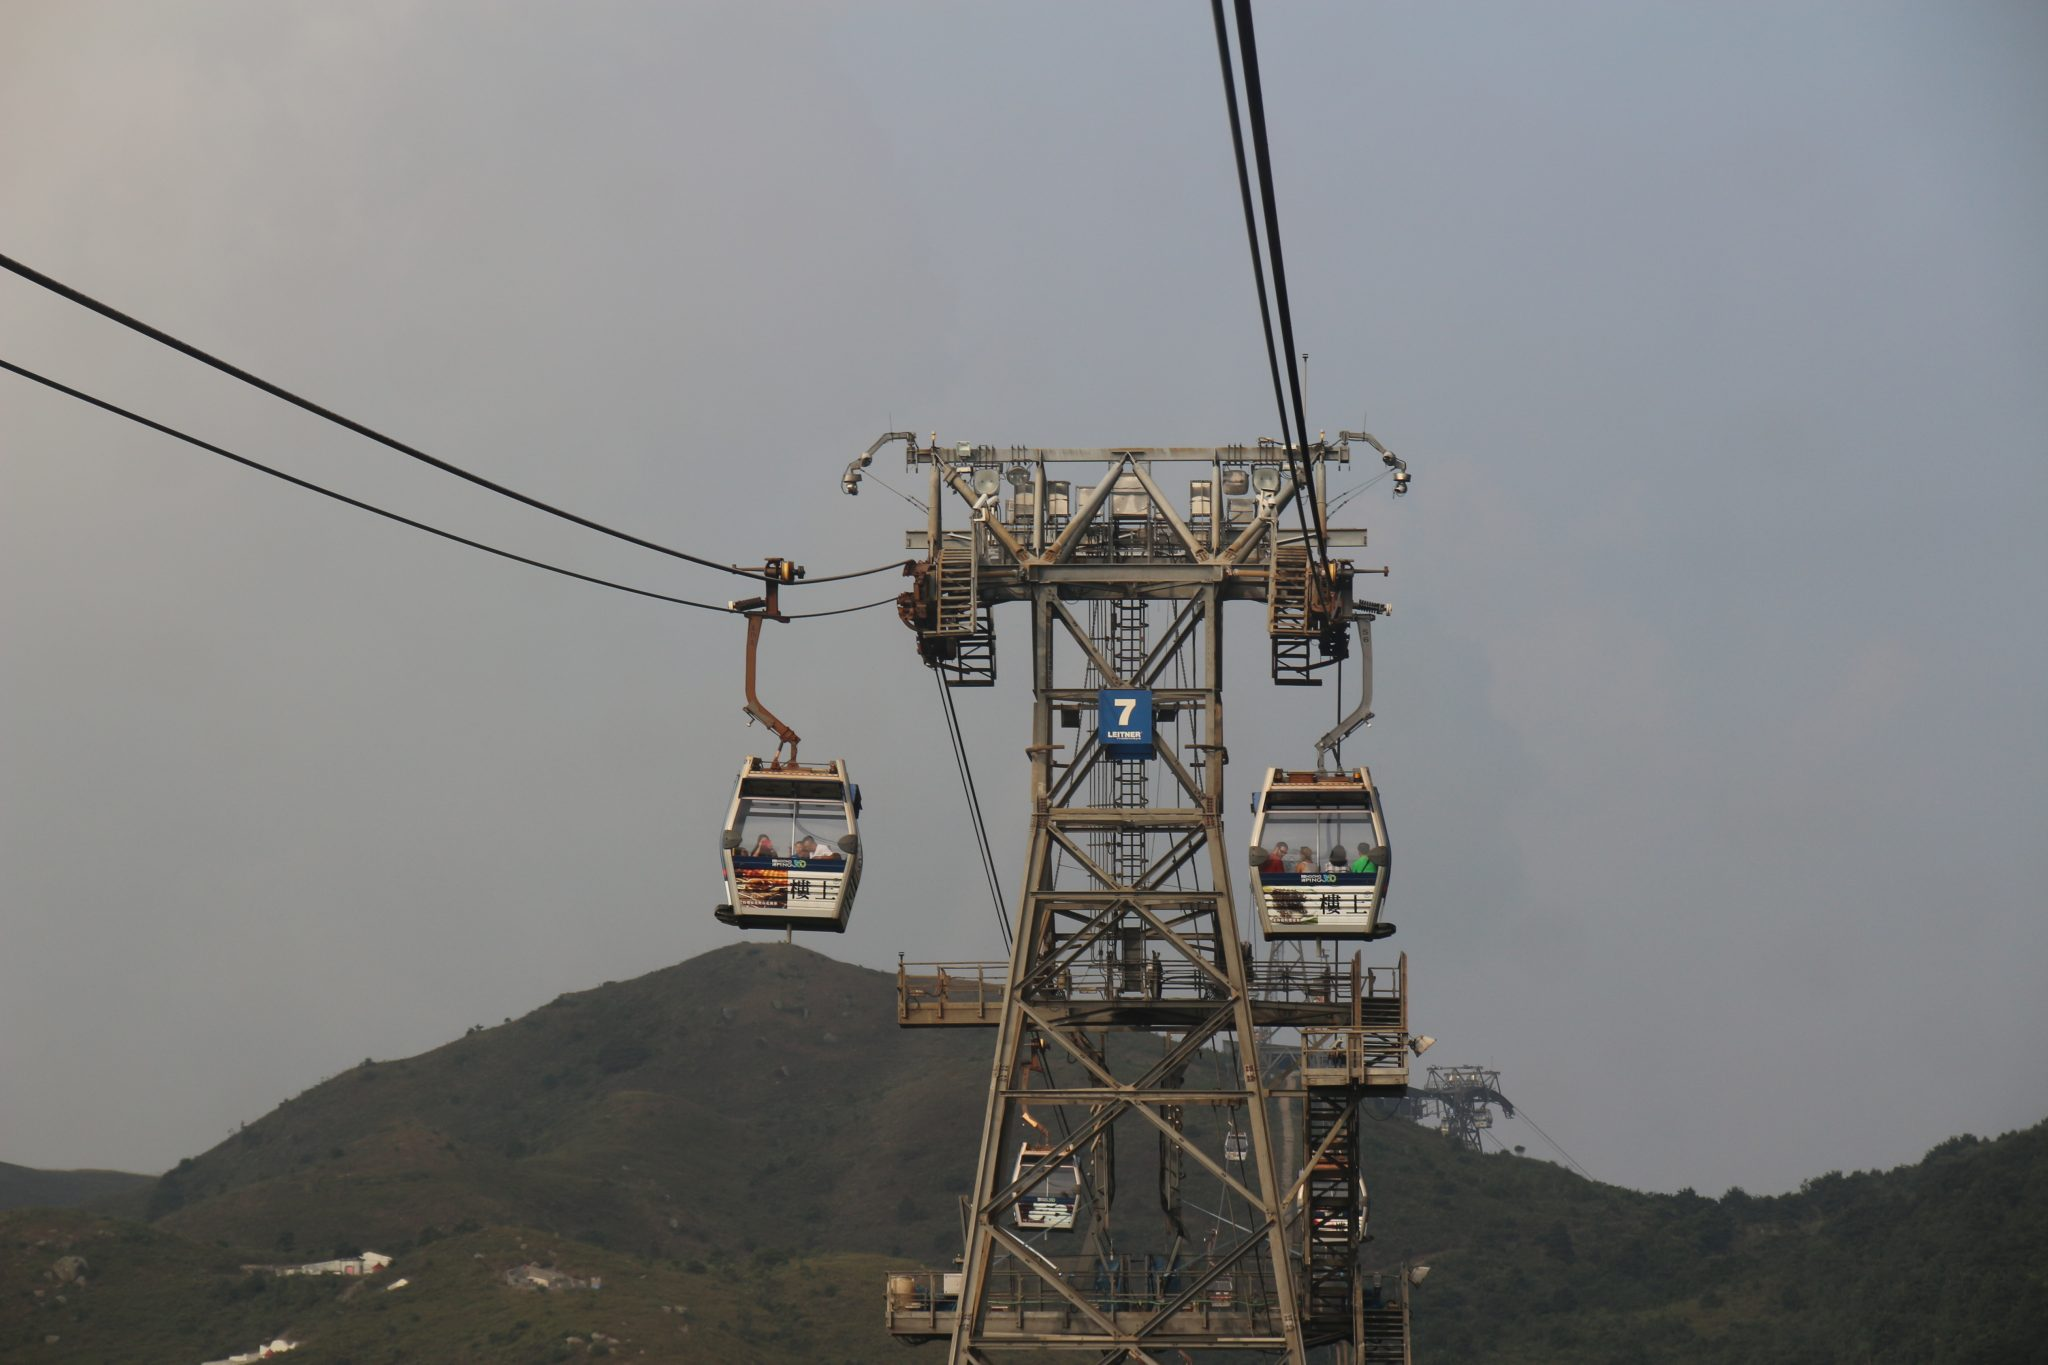 Cable car from Tung Chung to Lantau